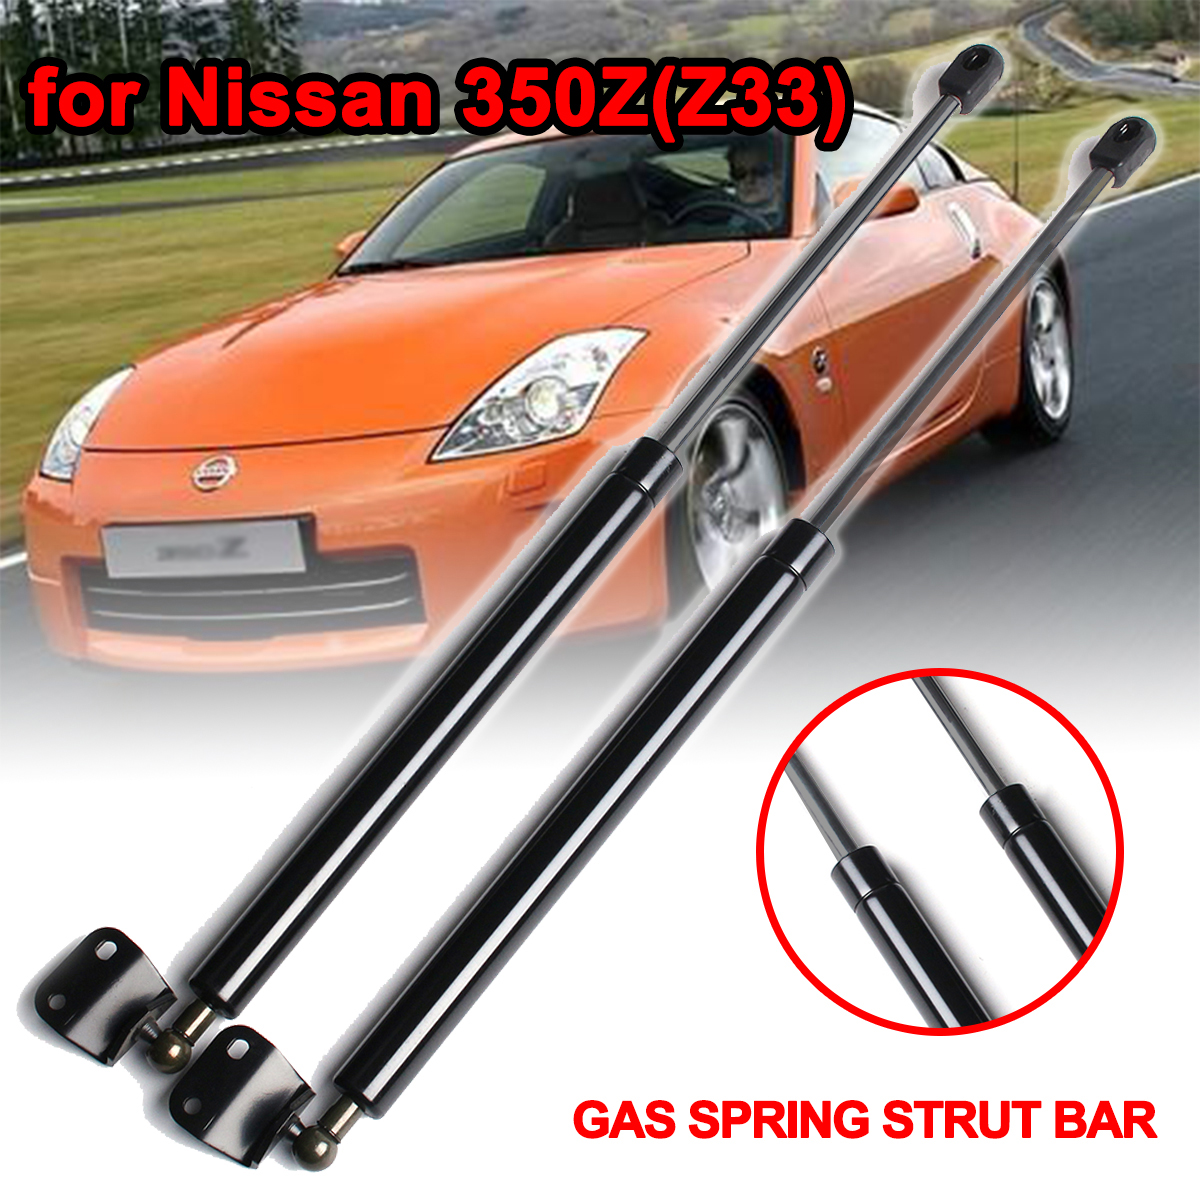 2 x Car Rear Tailgate Gas Strut Bars Trunk Support With Spoiler Car Accessories Strut Bars GS90453 For Nissan 350Z Z33 2003-2008 image